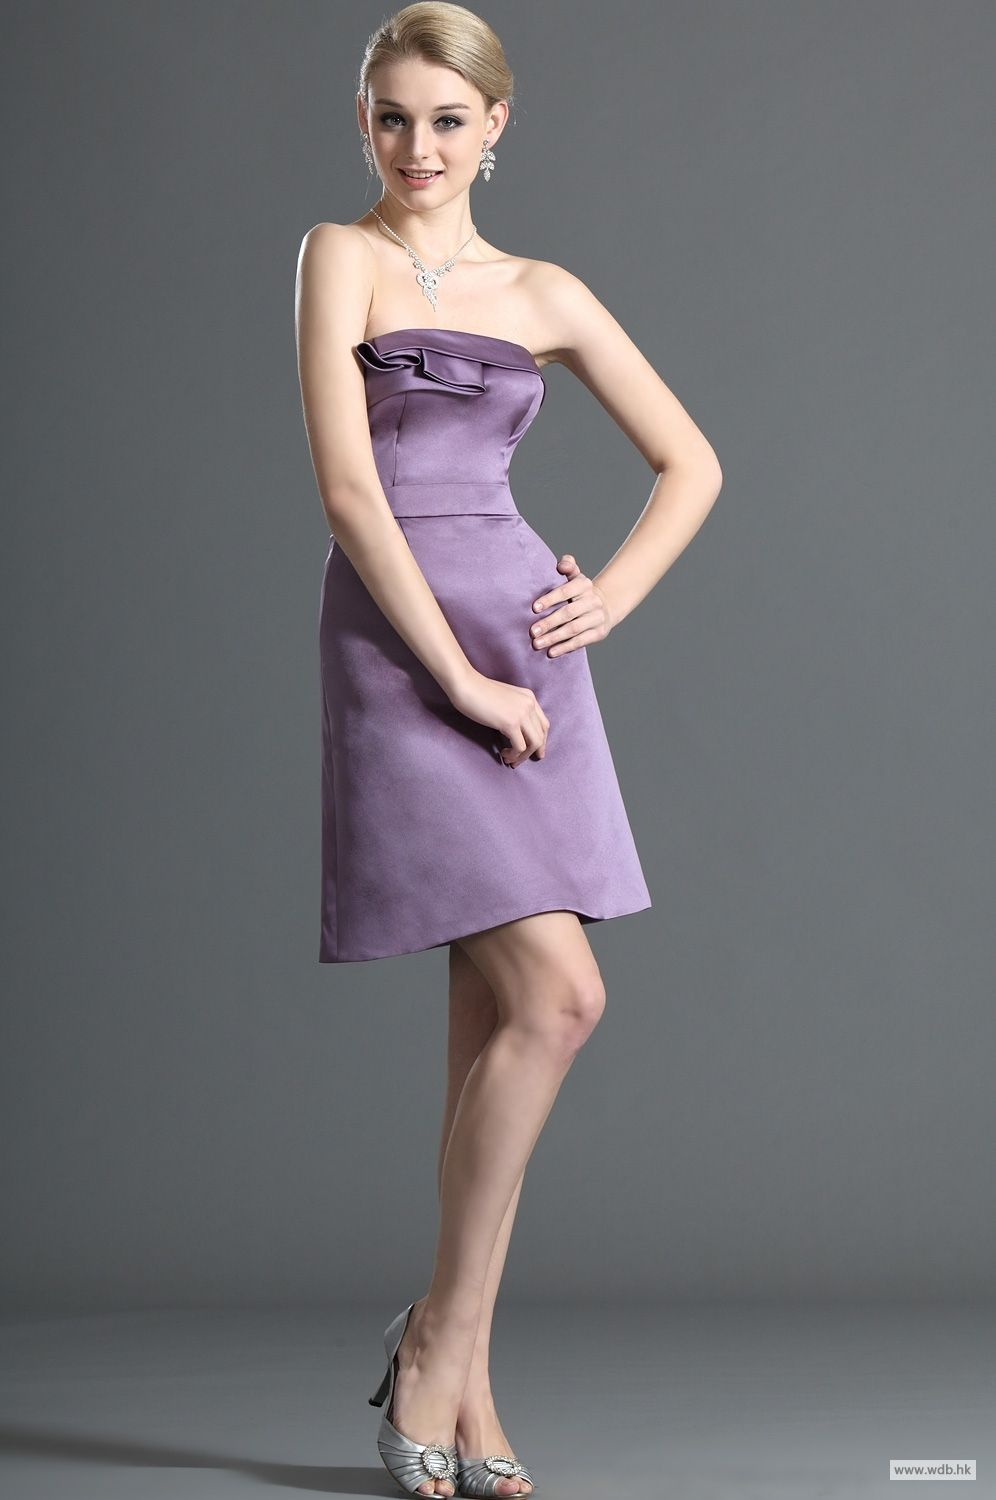 Wedding vows simple elegant strapless short satin bridesmaid dress wedding vows simple elegant strapless short satin bridesmaid dress 978 ombrellifo Image collections